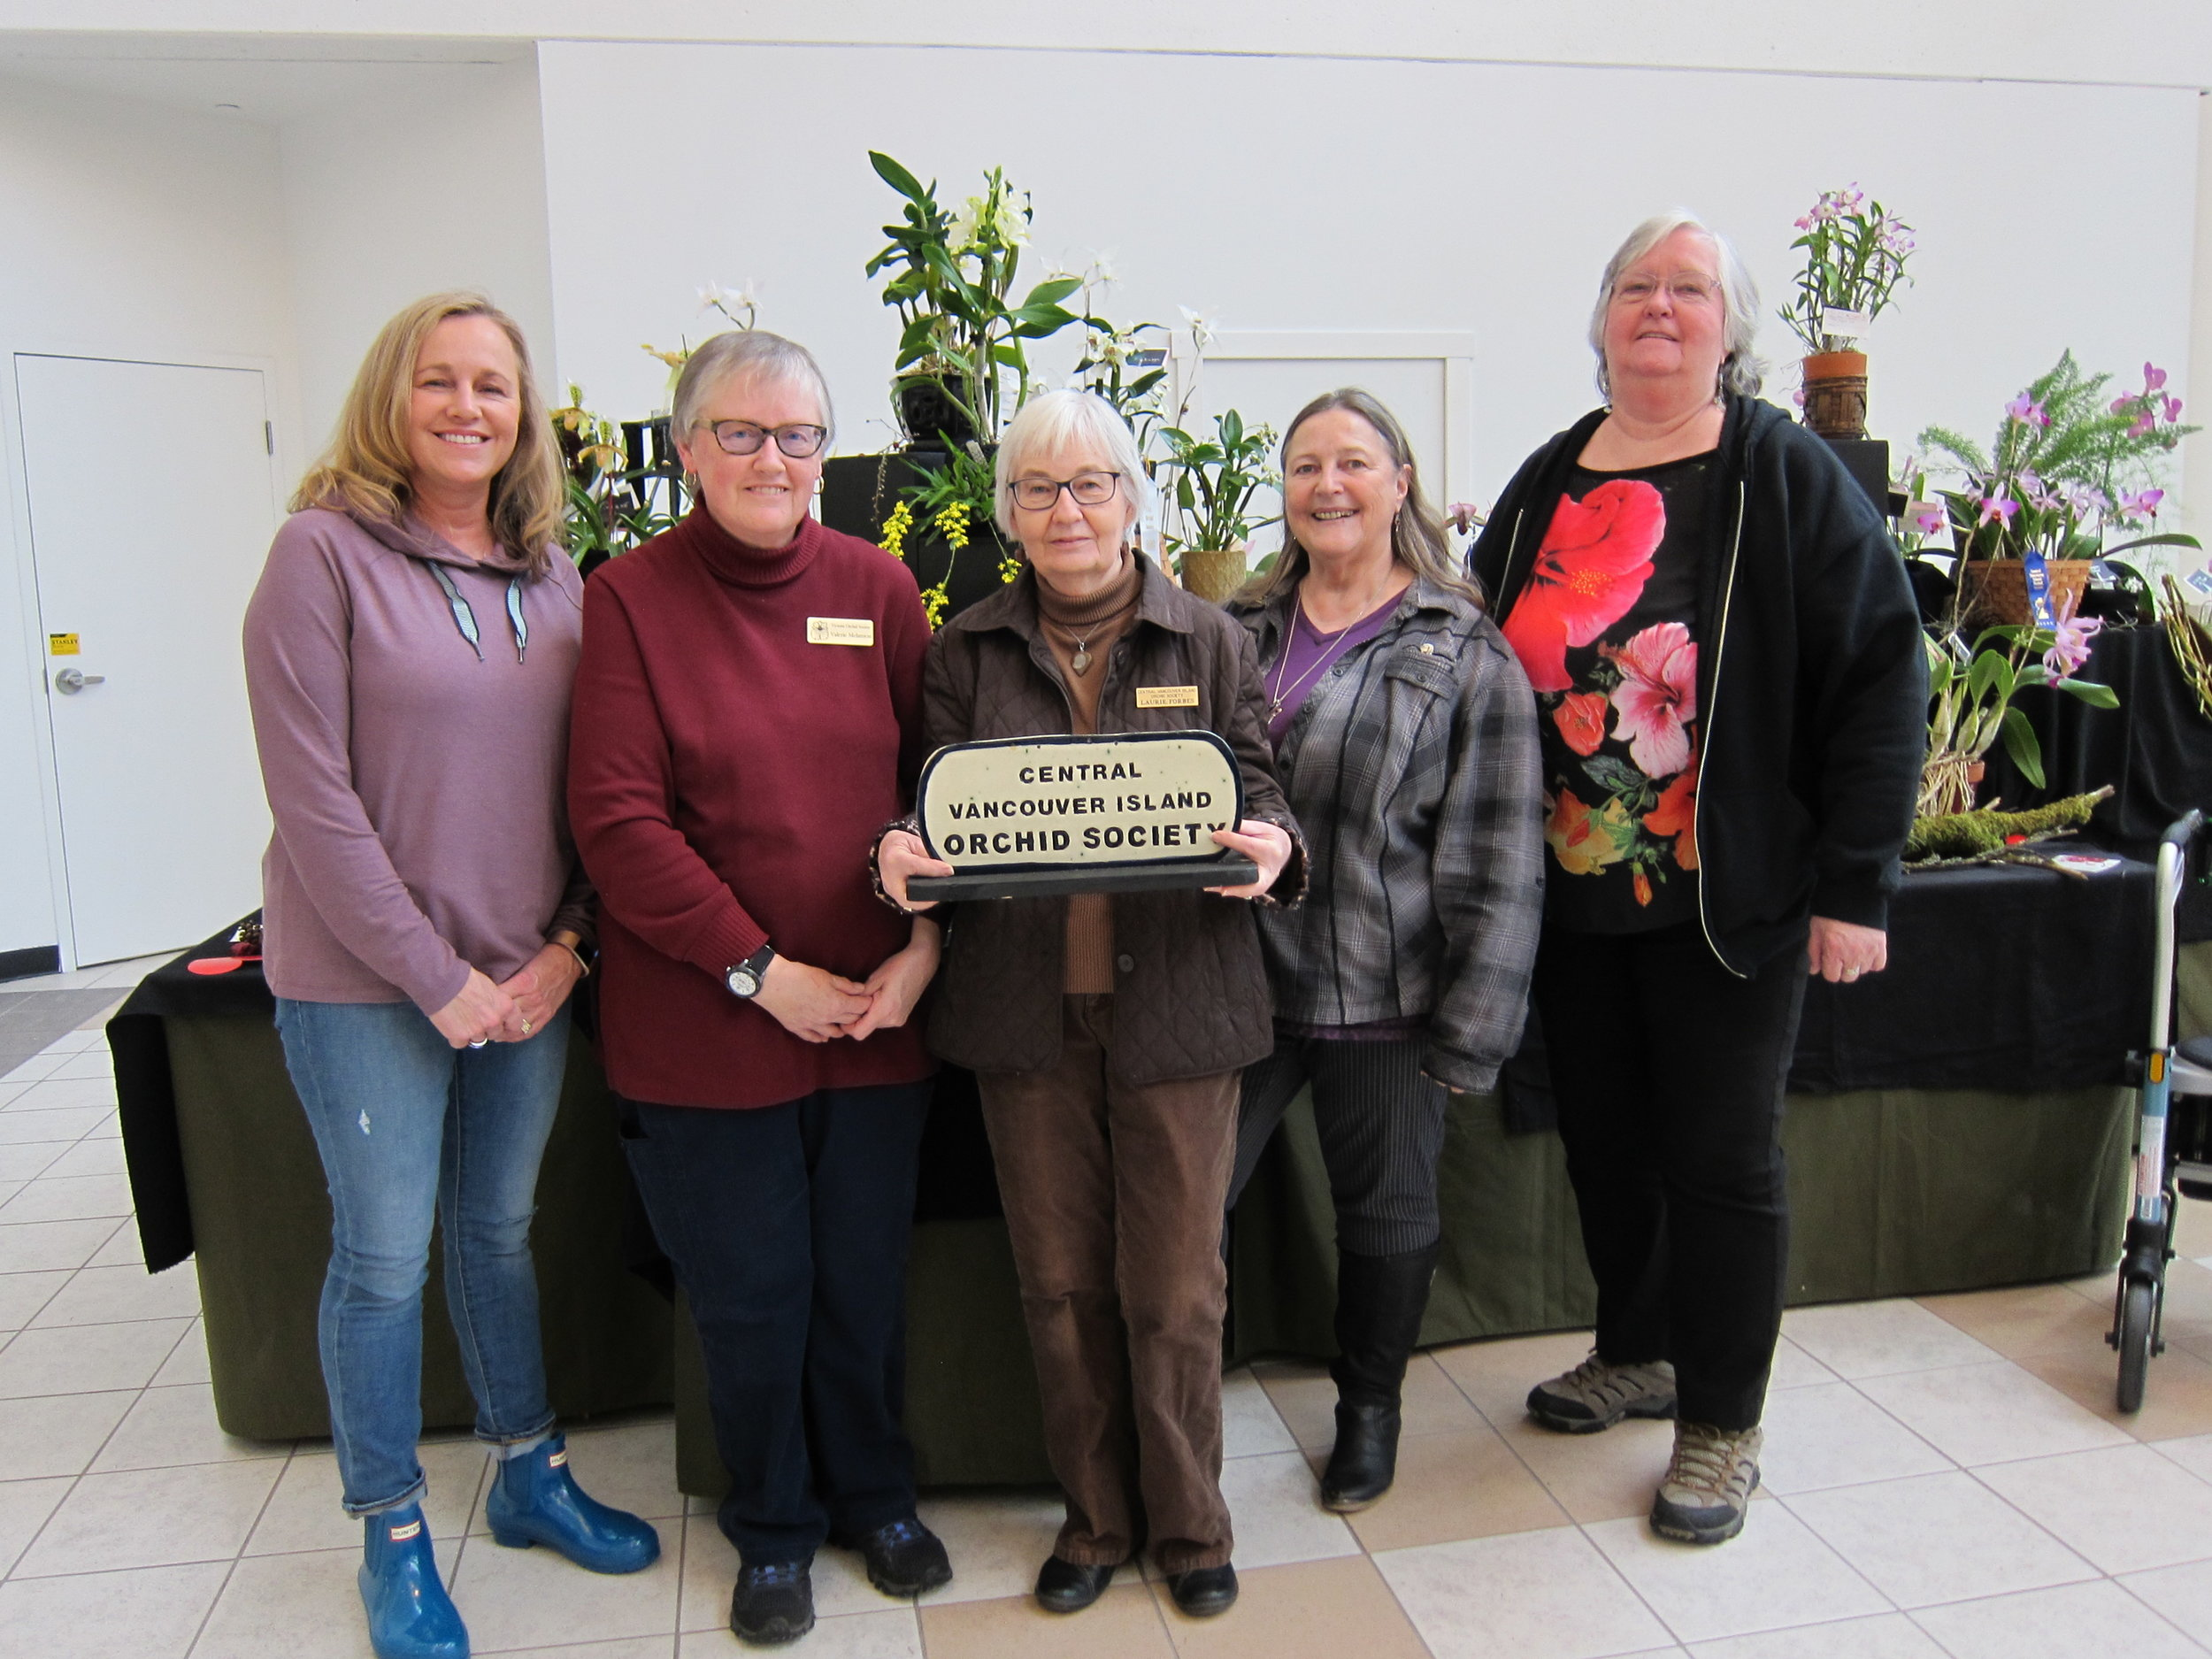 Suzanne, Valerie, Laurie, Darlene and Sheila – The CVIOS show committee